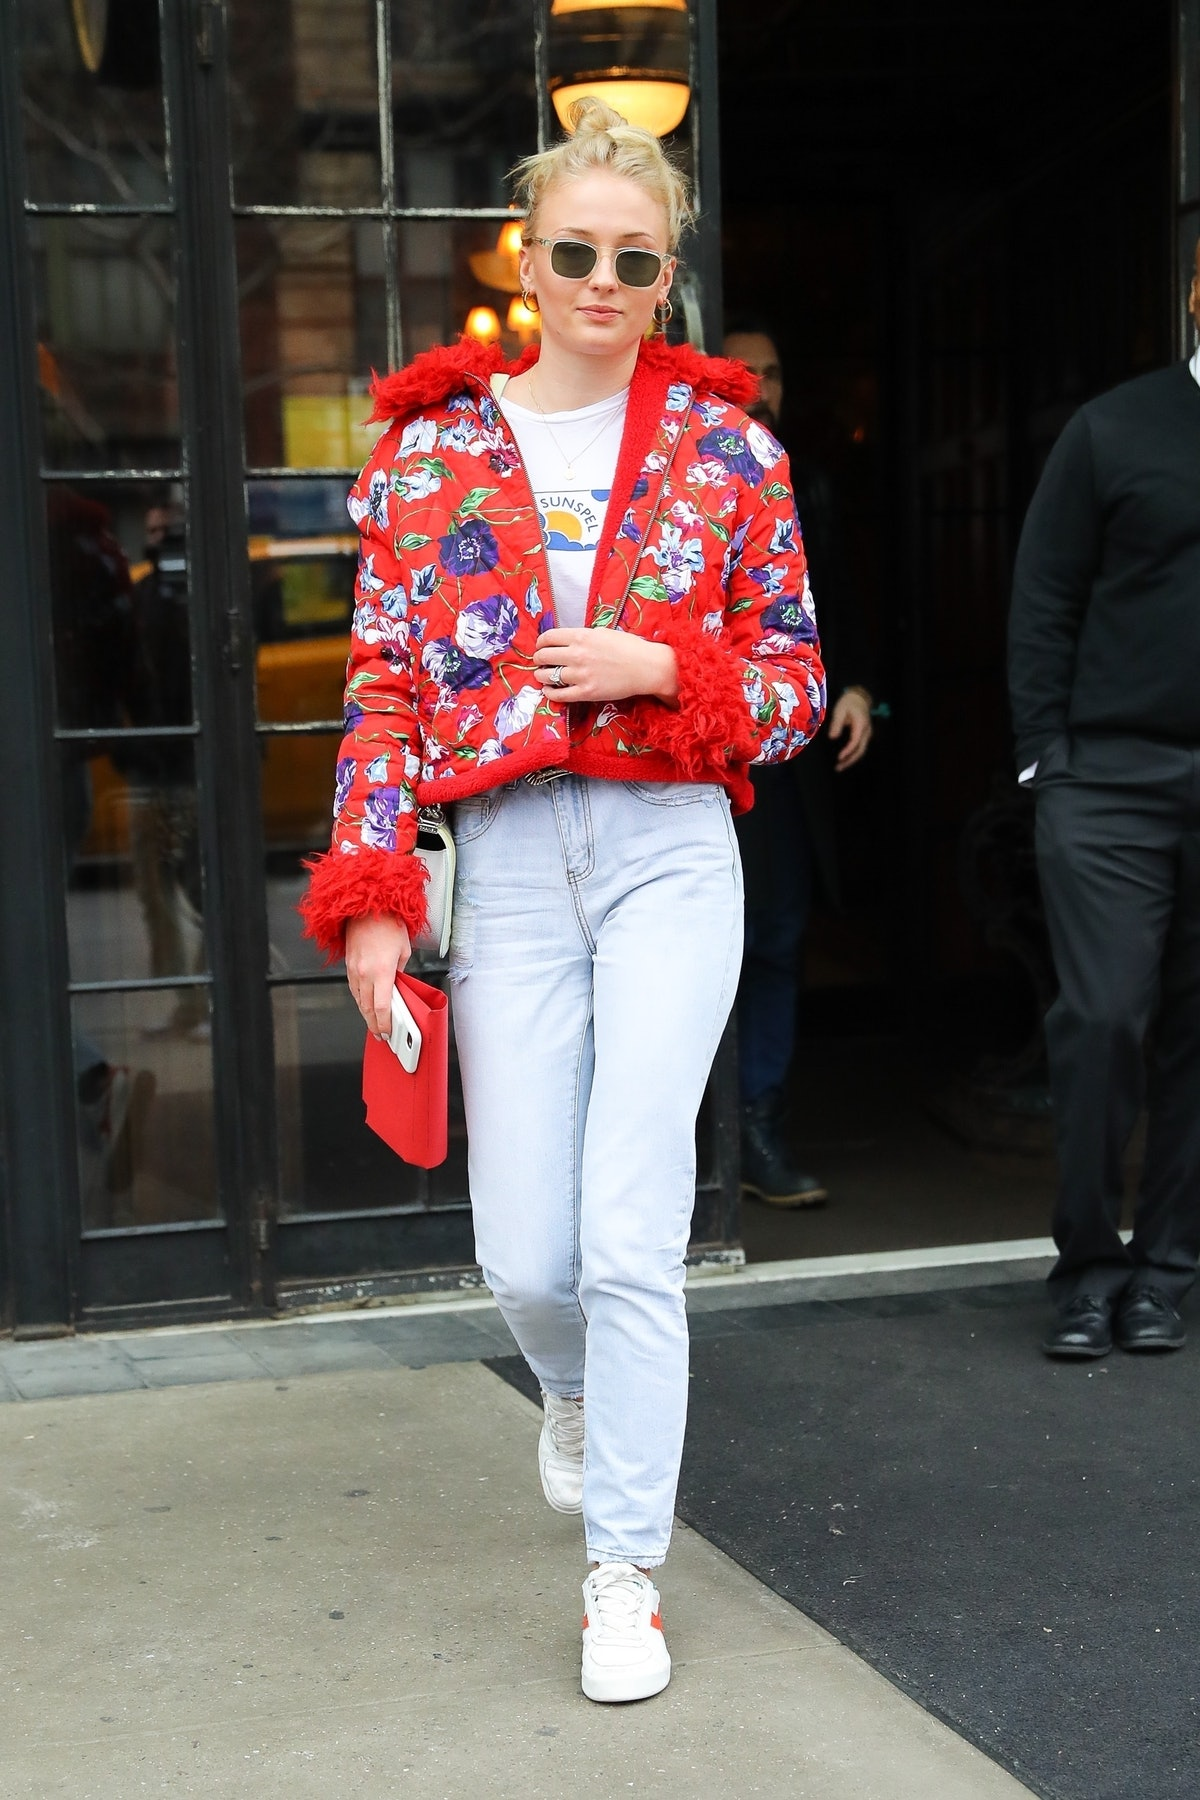 Sophie Turner's Style Is Easy To Recreate With These 4 Spring-Ready Jackets